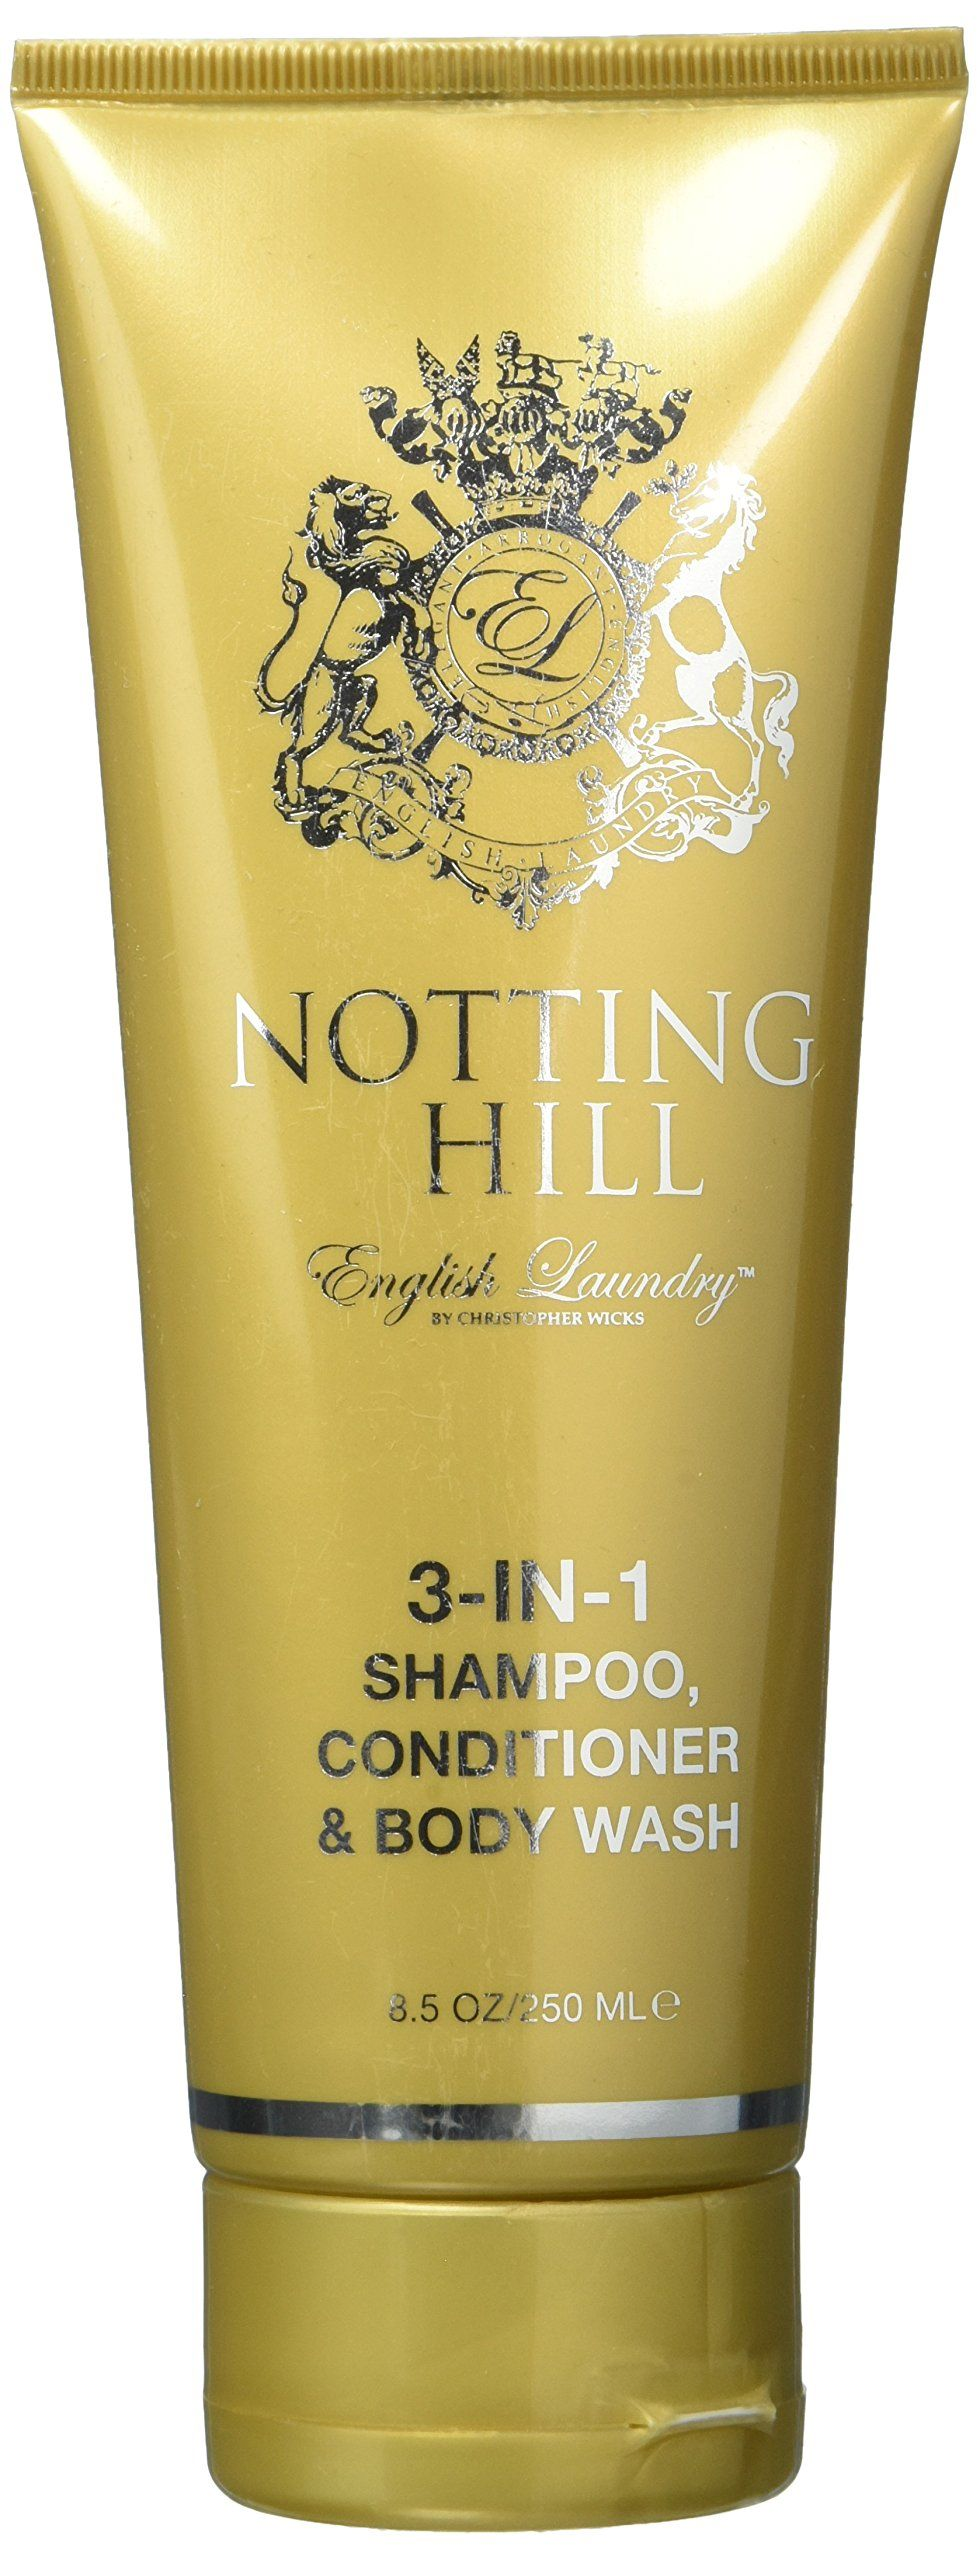 English Laundry Notting Hill 3in1 Conditioning Formula 8 5 Oz